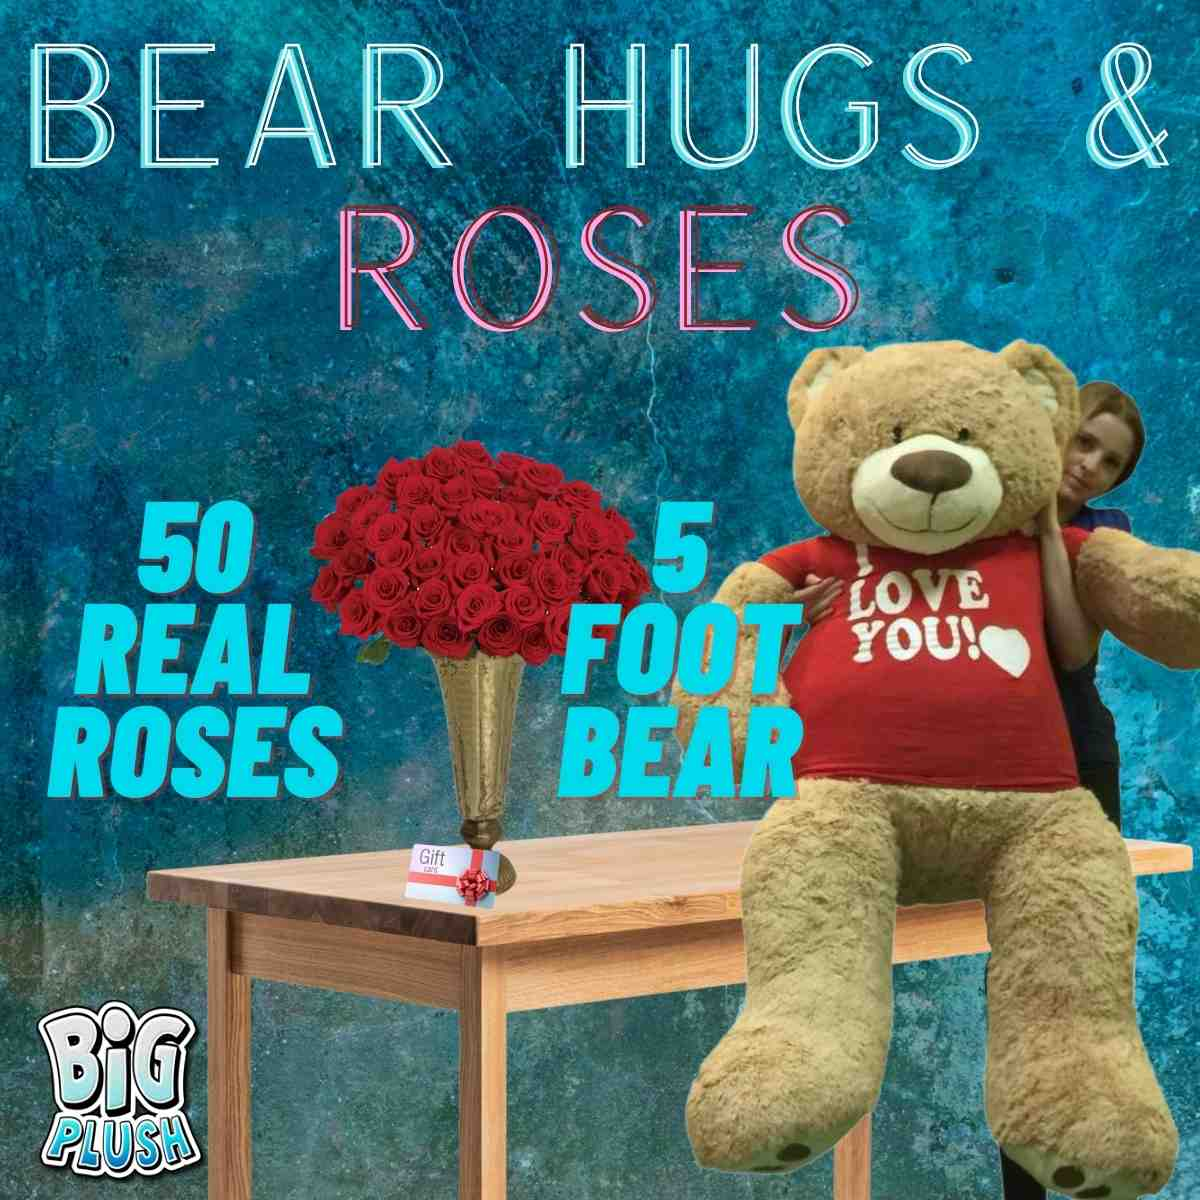 Magnificent Valentine's Day Gift Bundle includes both, a 5 foot giant teddy bear PLUS a huge bouquet of fifty real red roses with vase